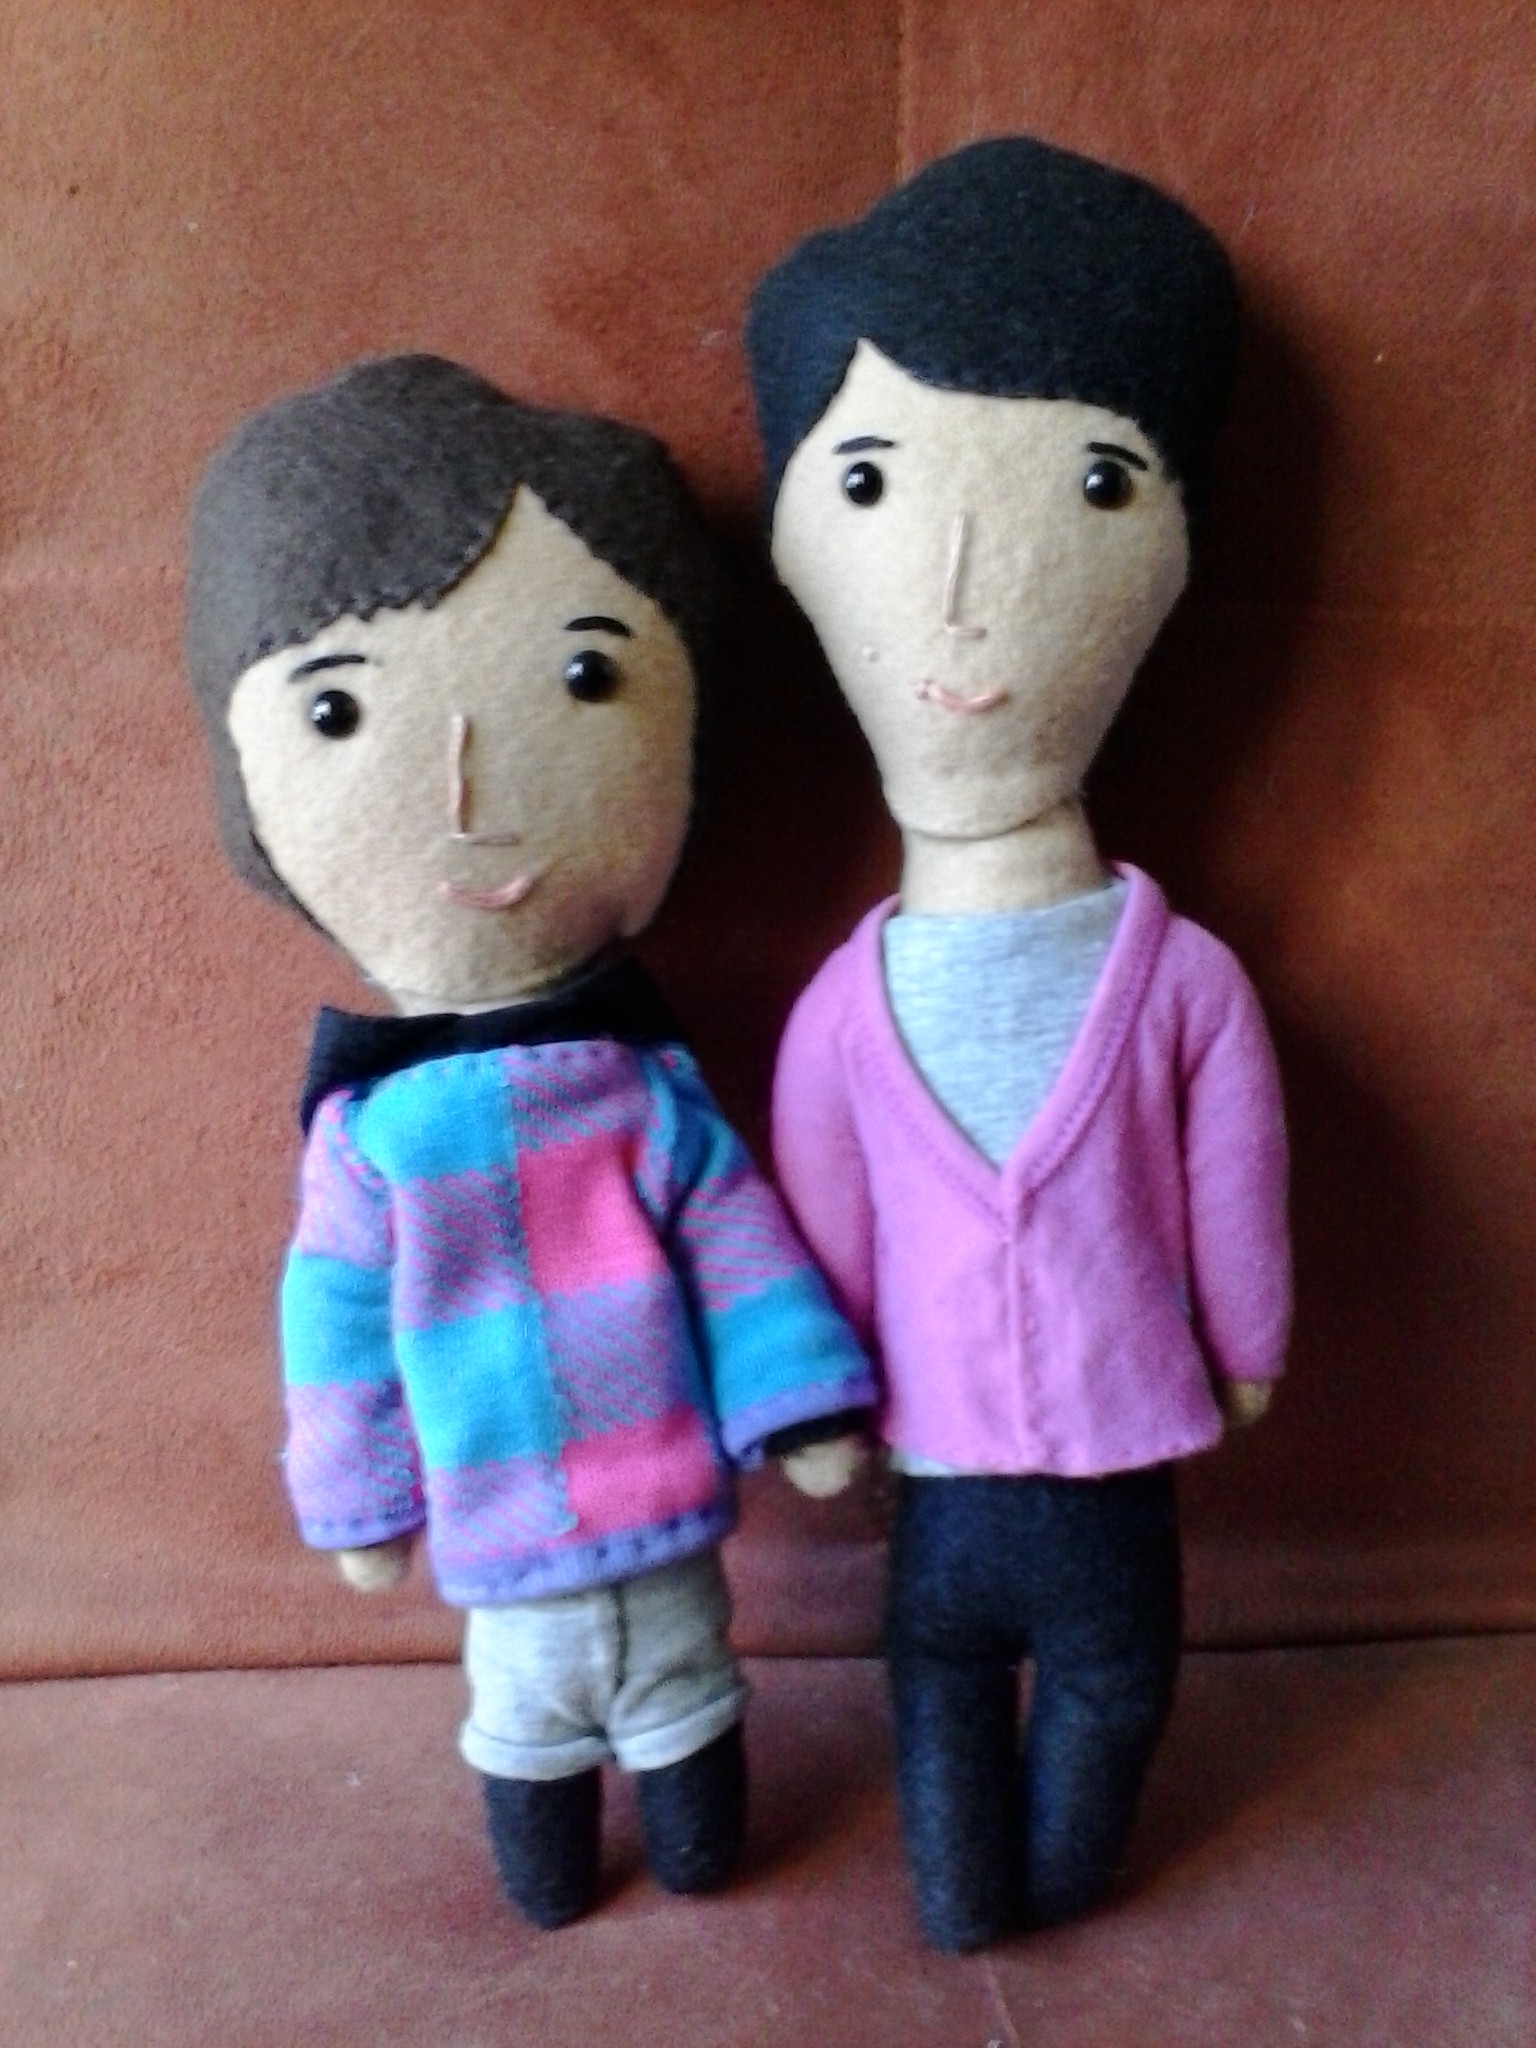 Gil Ra Im and Kim Joo Won dolls from Secret Garden